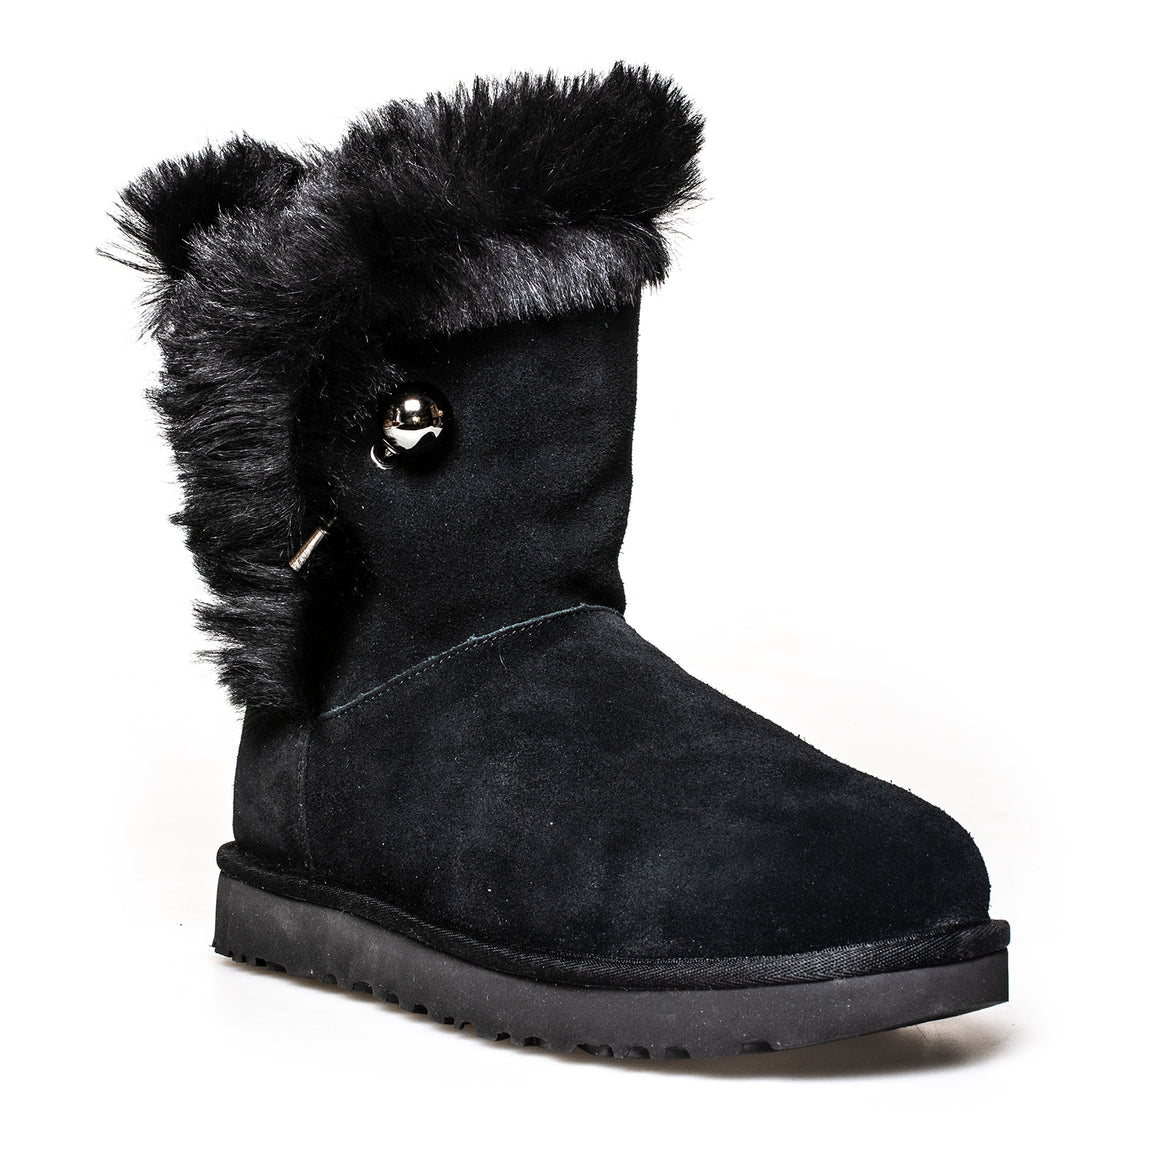 UGG Classic Fluff Pin Black Boots - Women's